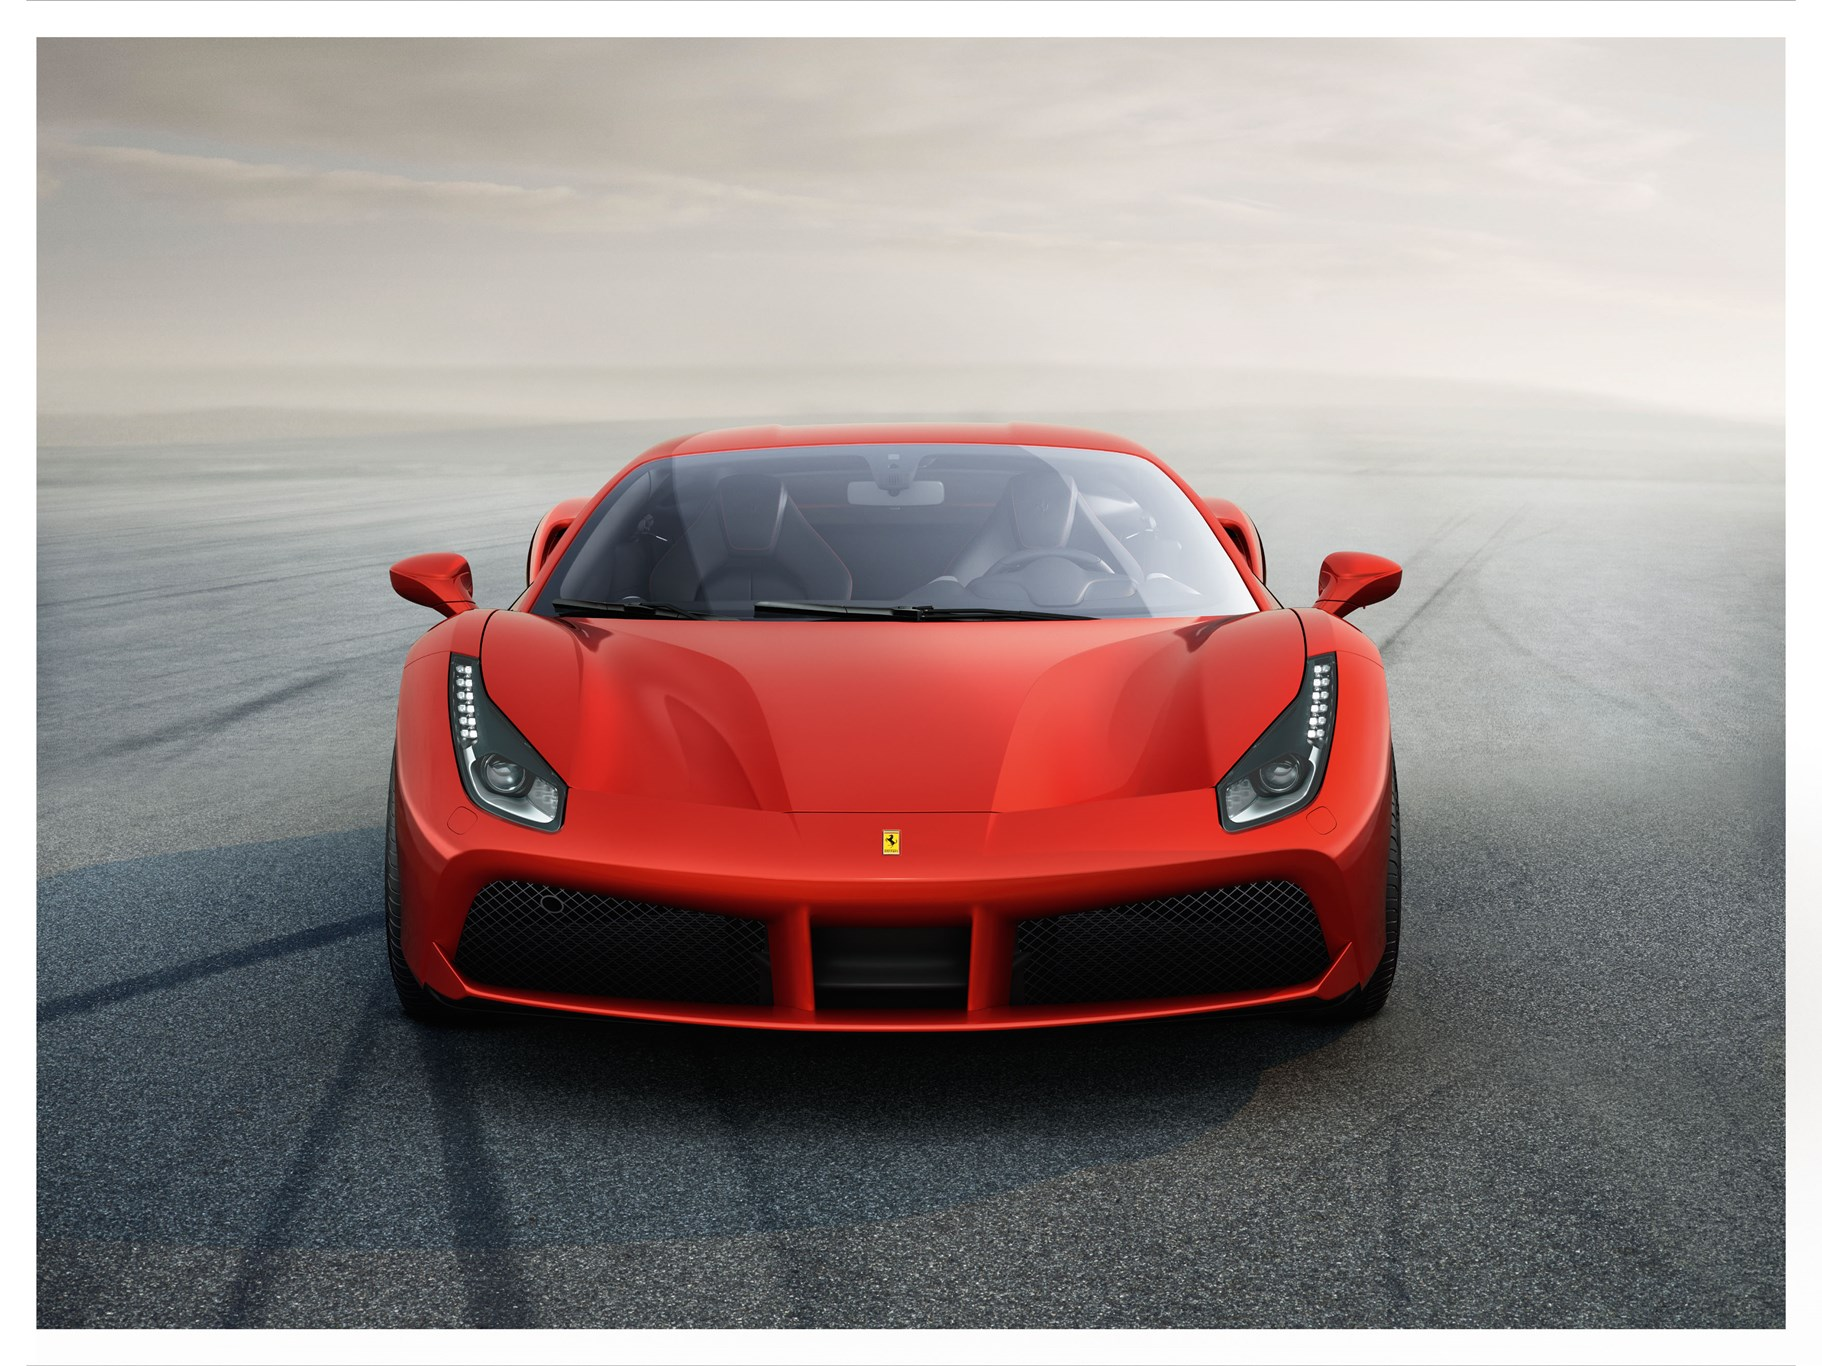 ferrari 488 gtb 458 italia replacement goes turbo - 2016 Ferrari 458 Replacement